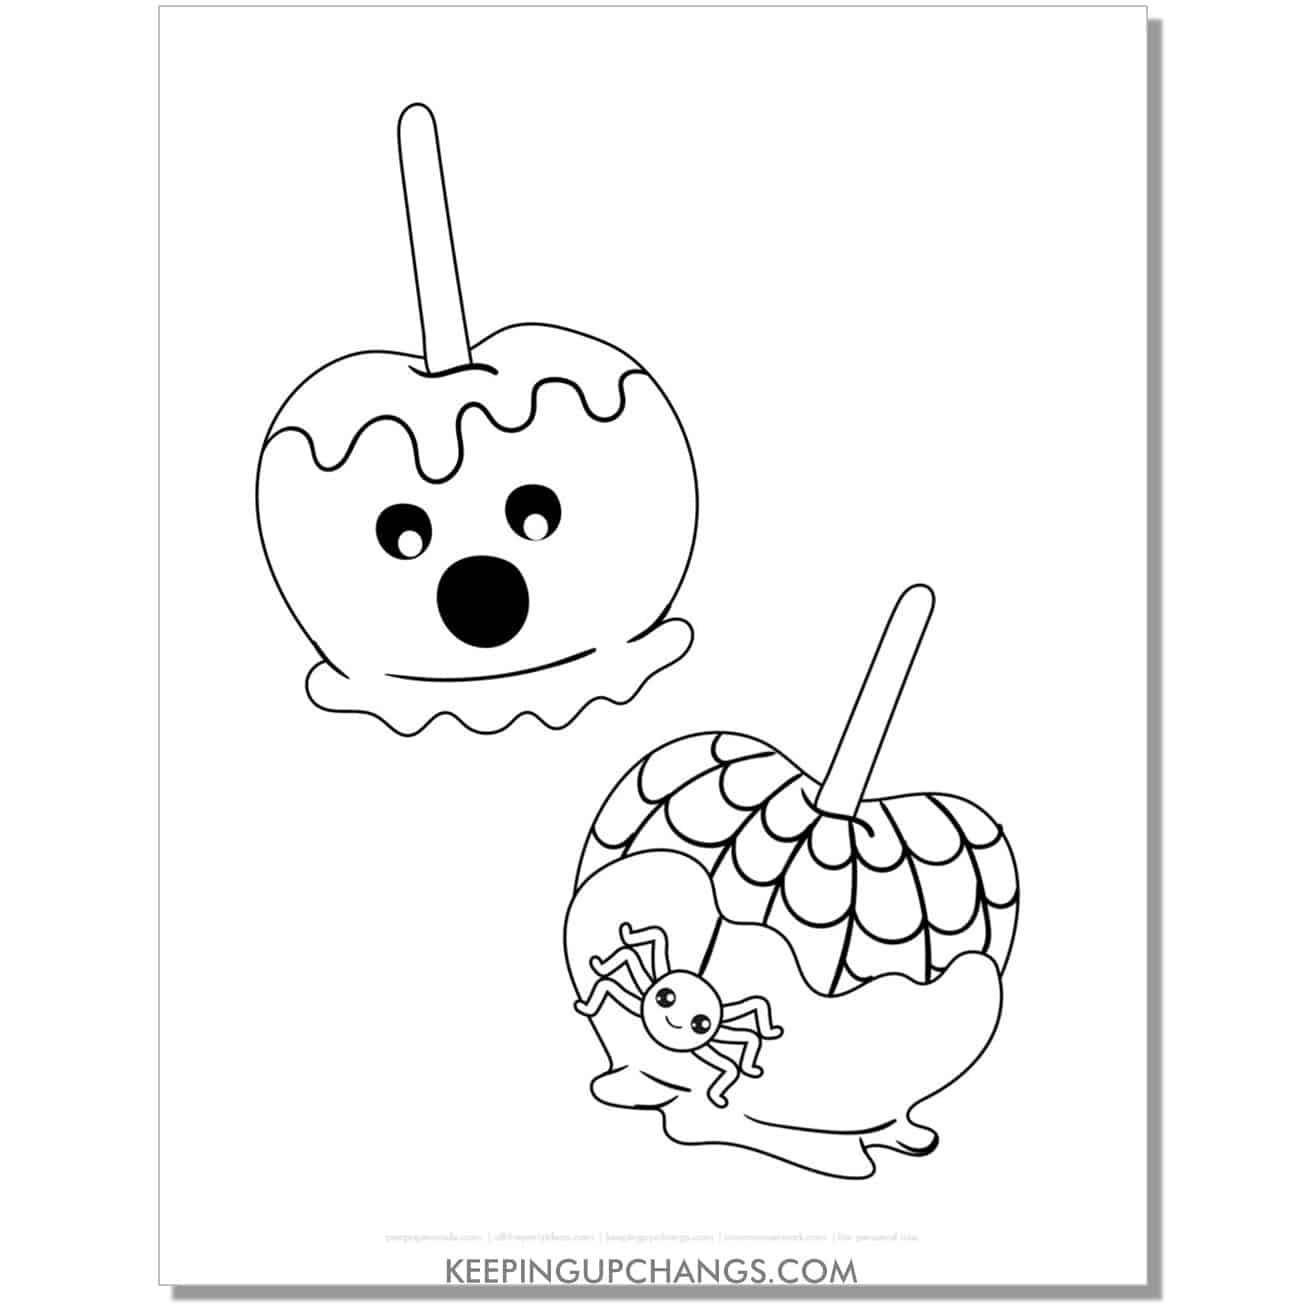 free candy apple halloween coloring page for kids.